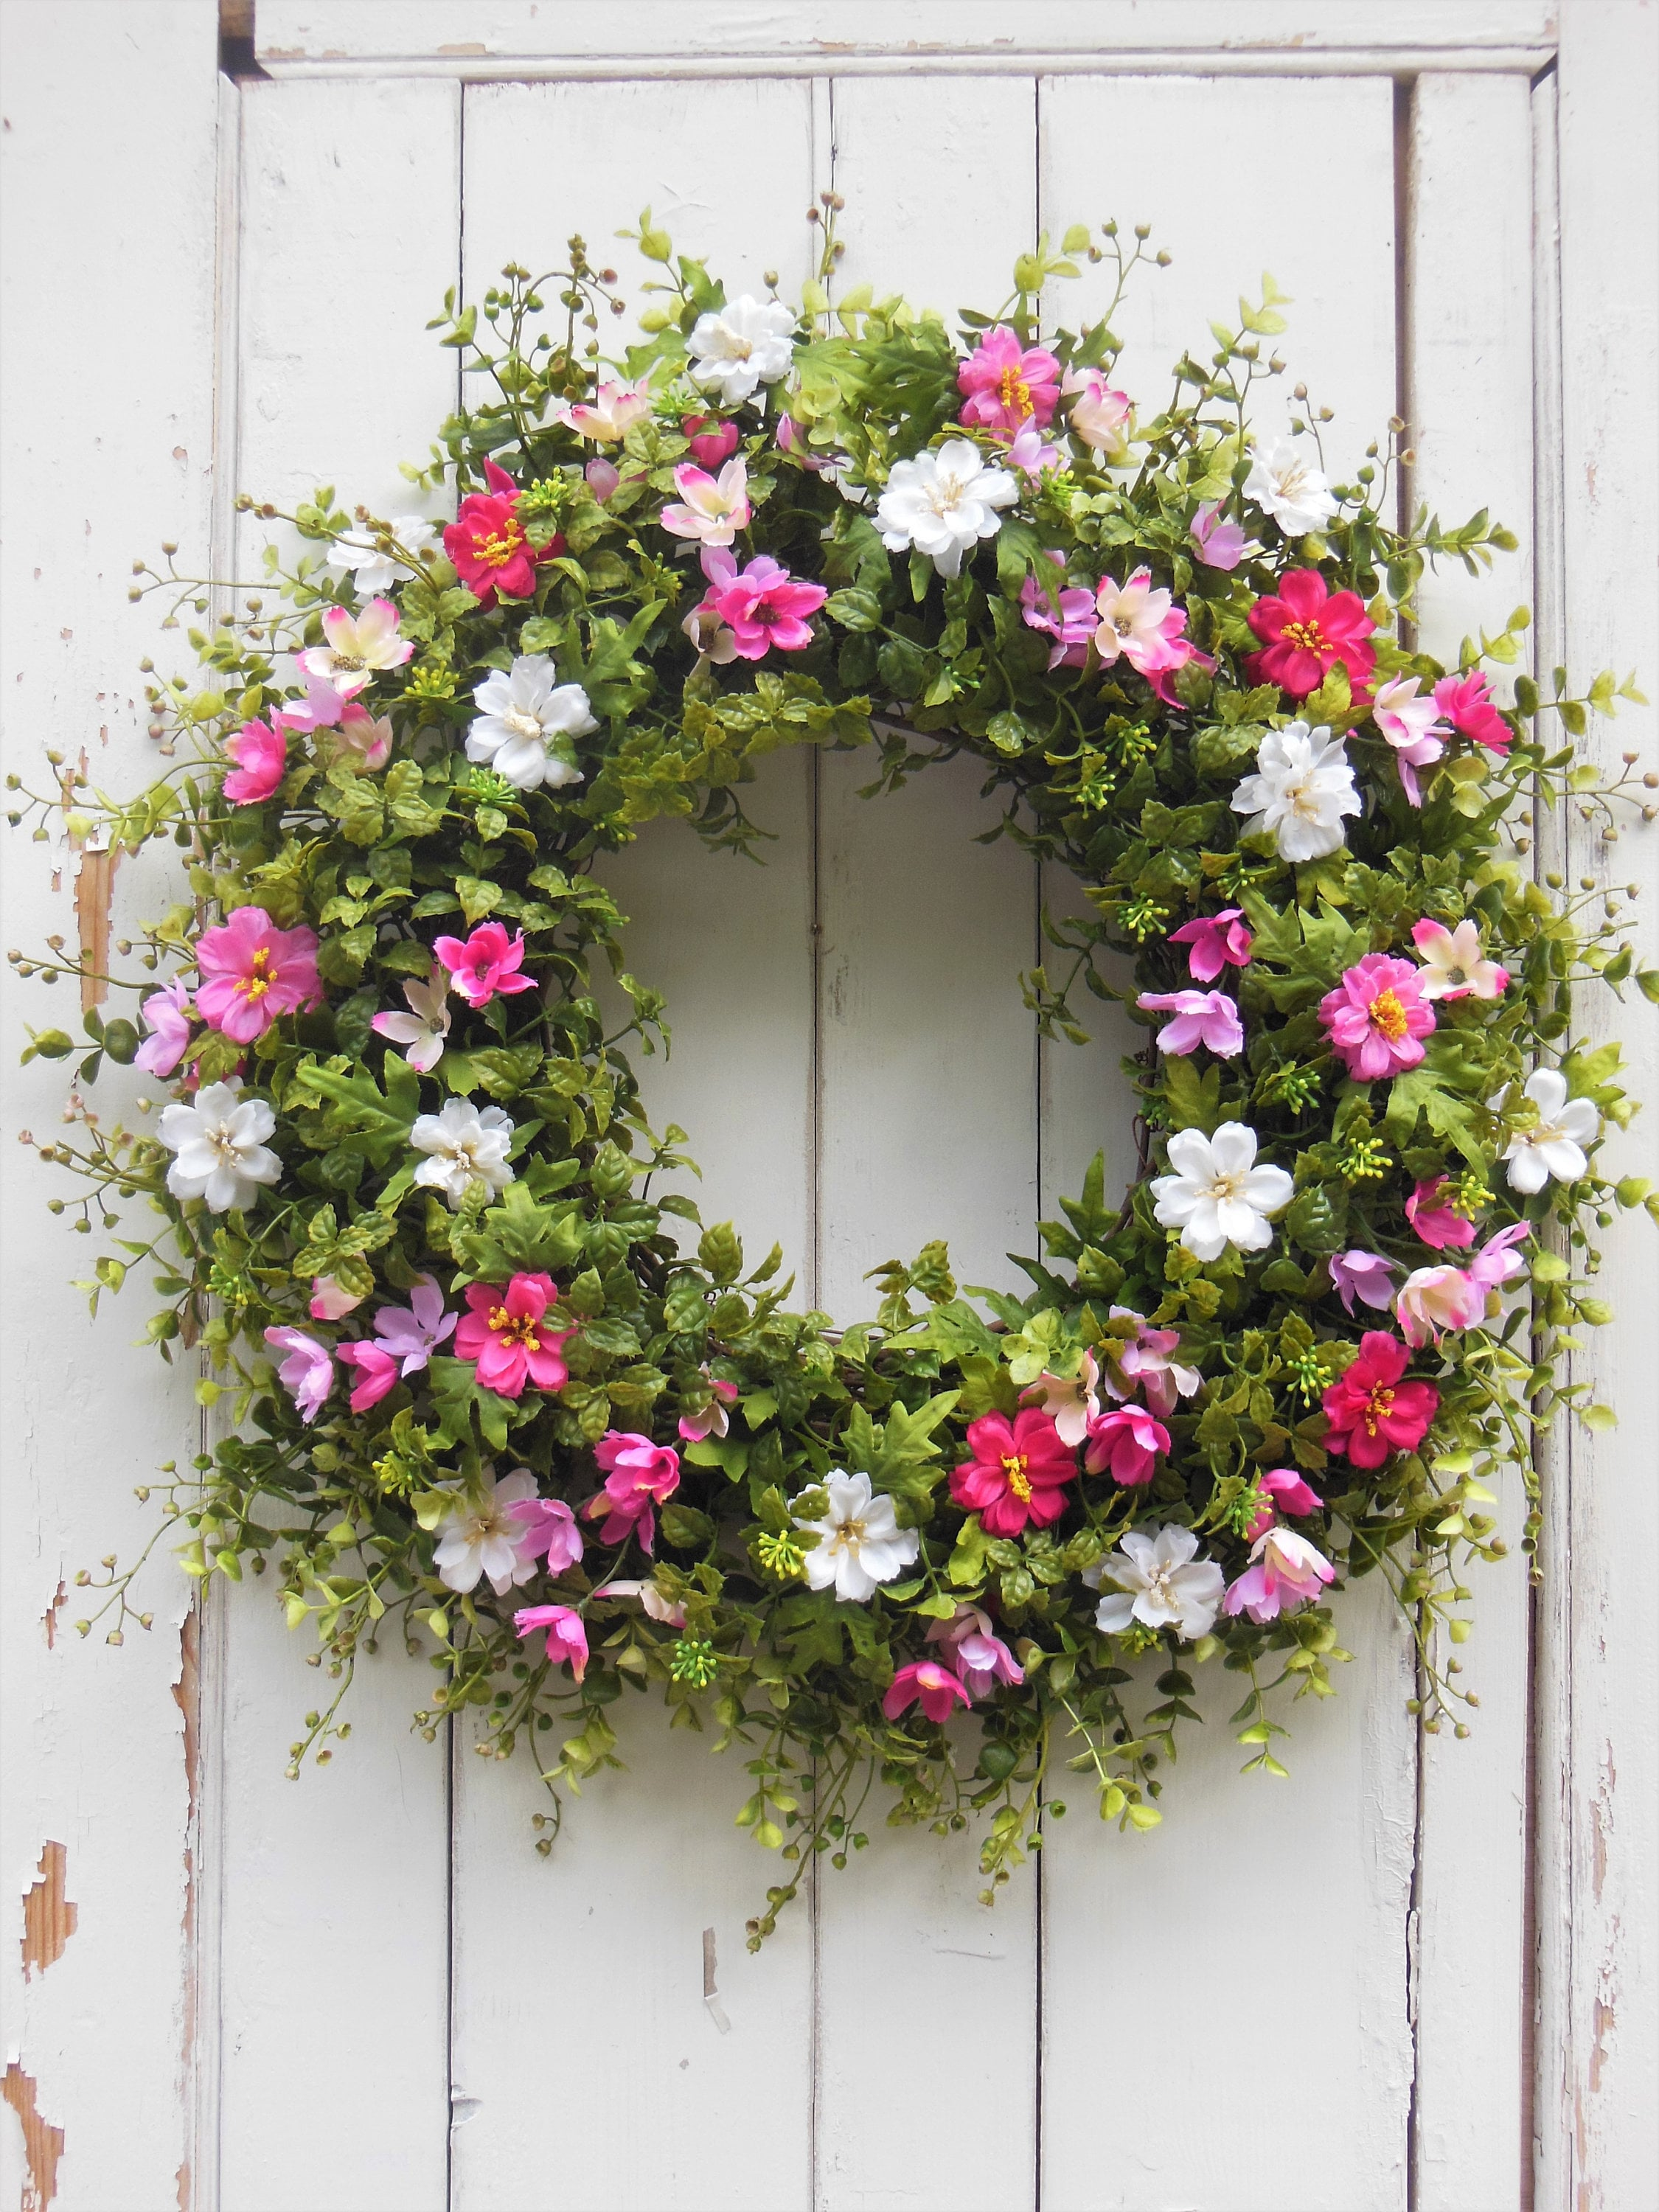 a doors lobby outdoor size door to full how ideas wreath michaels spring wreaths summer fall large for christmas hobby make diy front of cheap